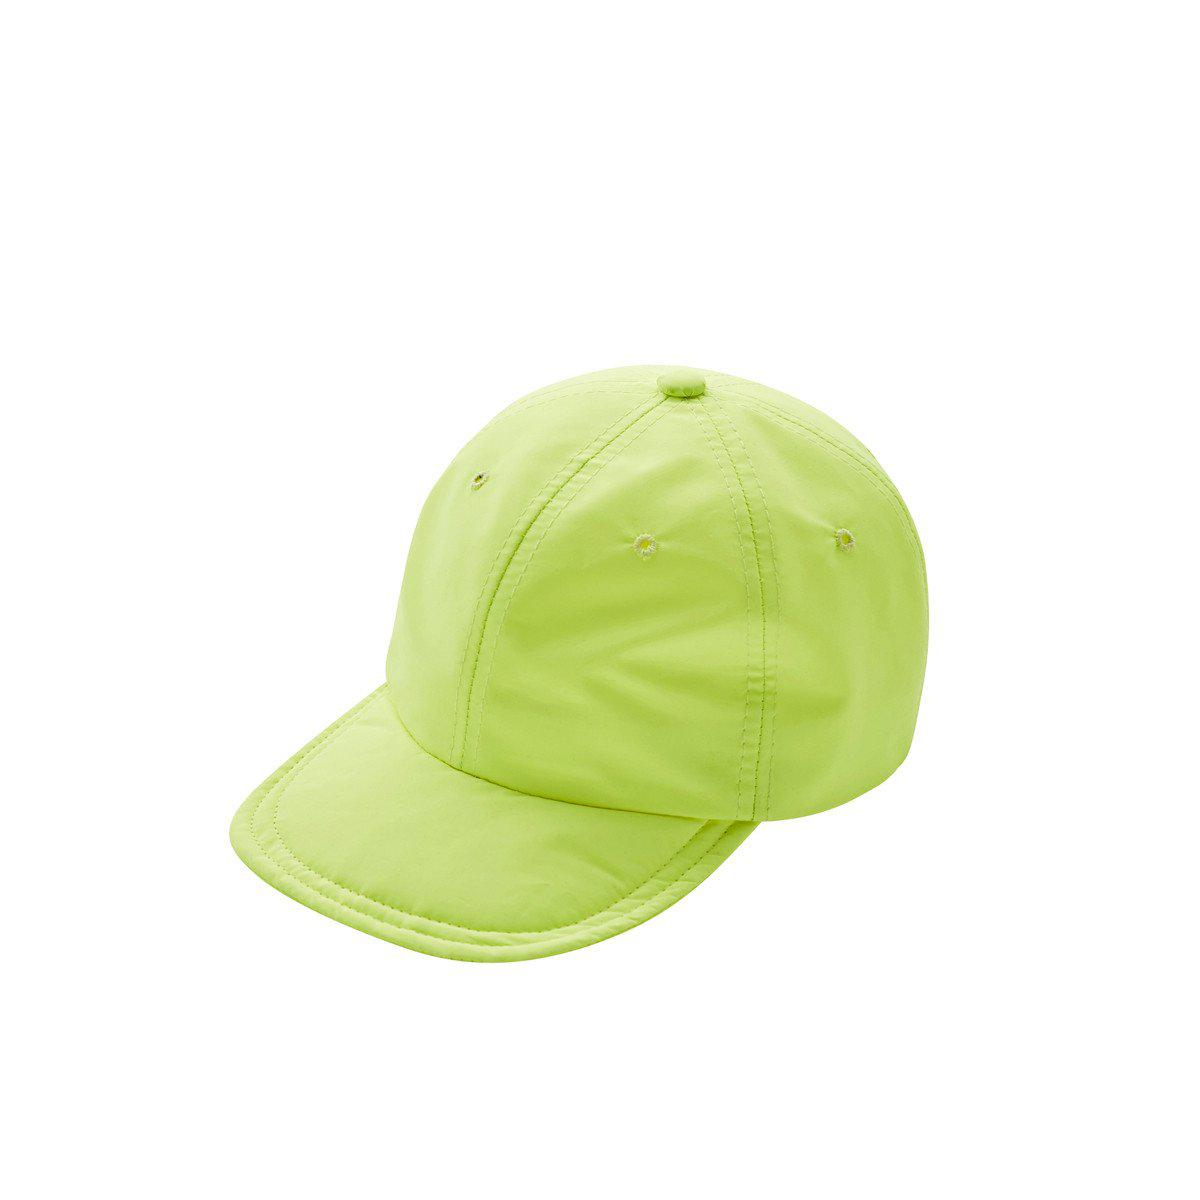 1a646f5d Used Future Soft Cap Yellow in Green for Men - Lyst